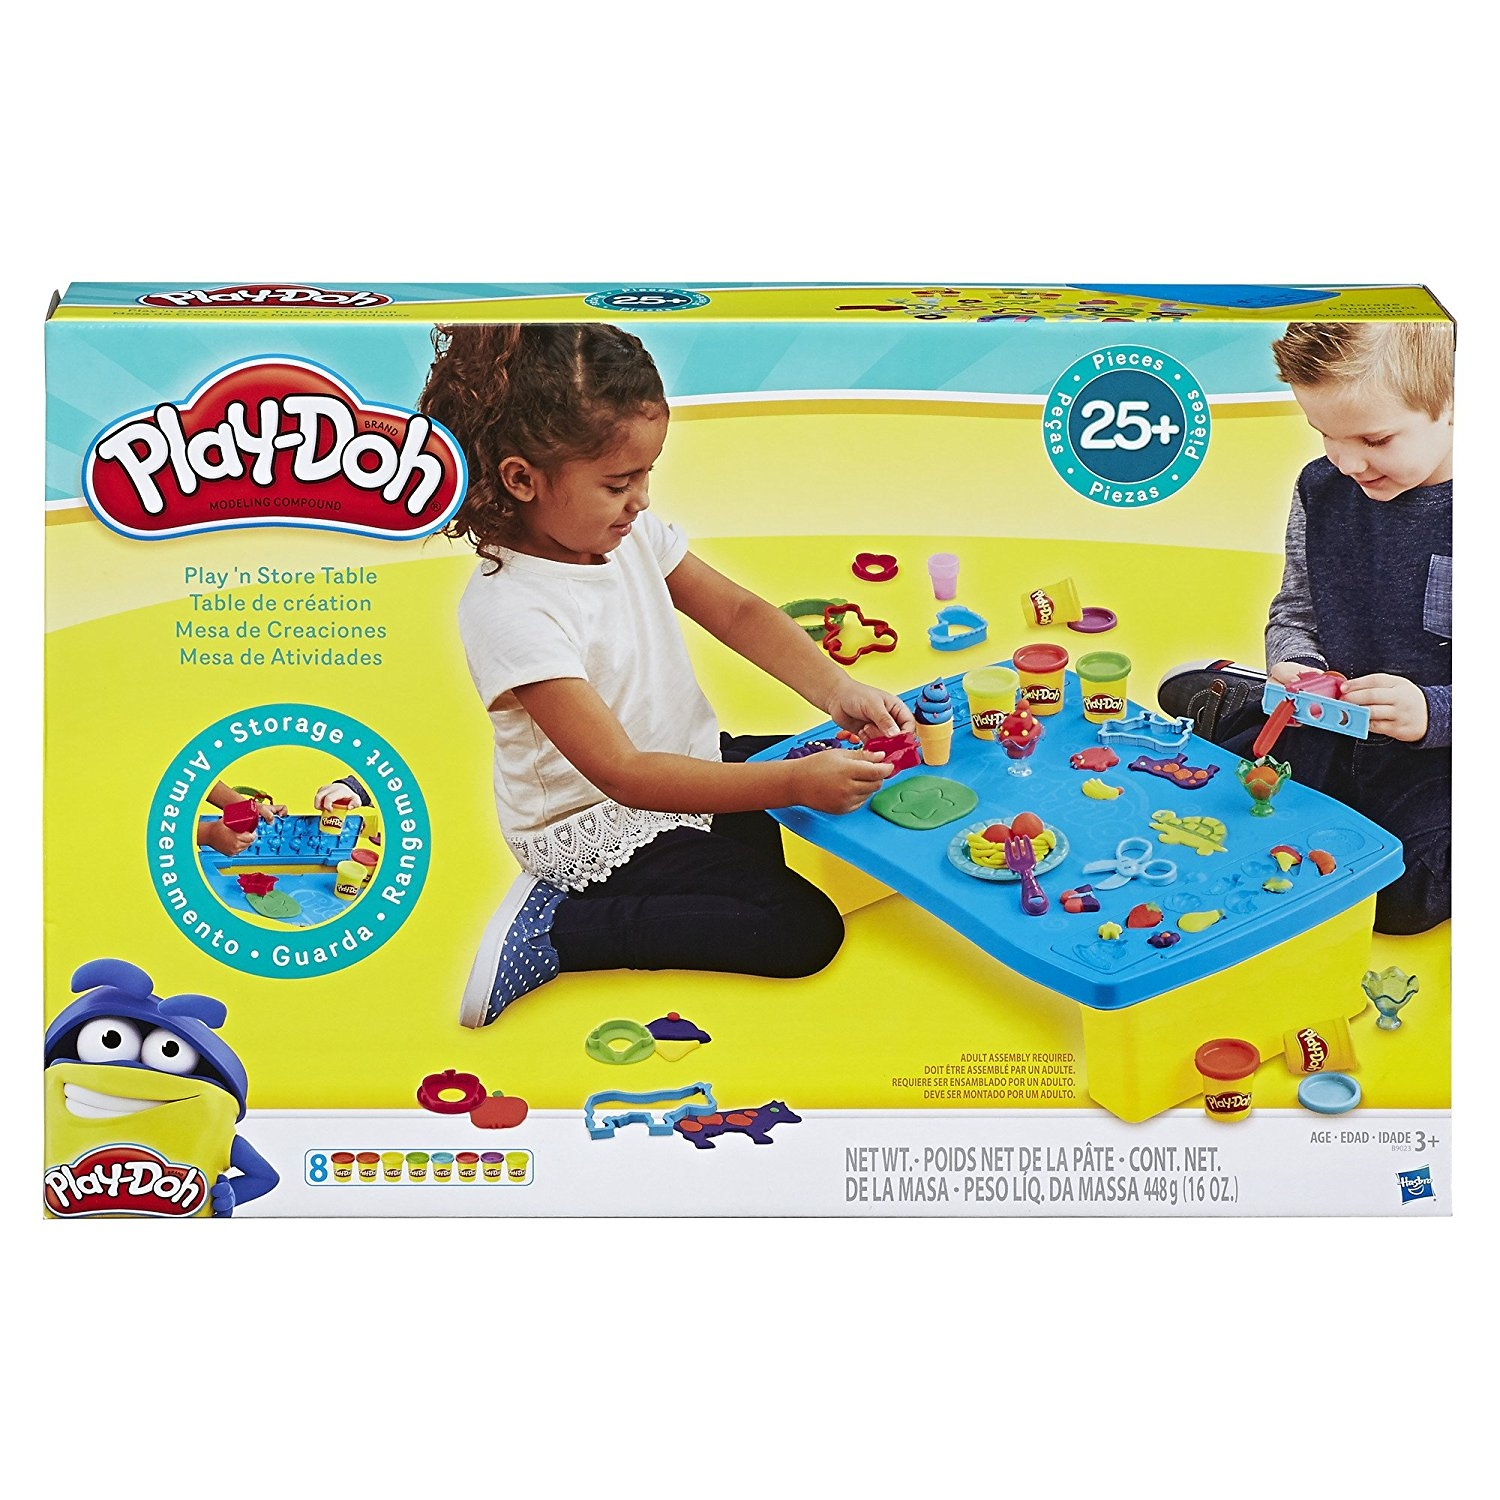 Play Doh Play And Store Table